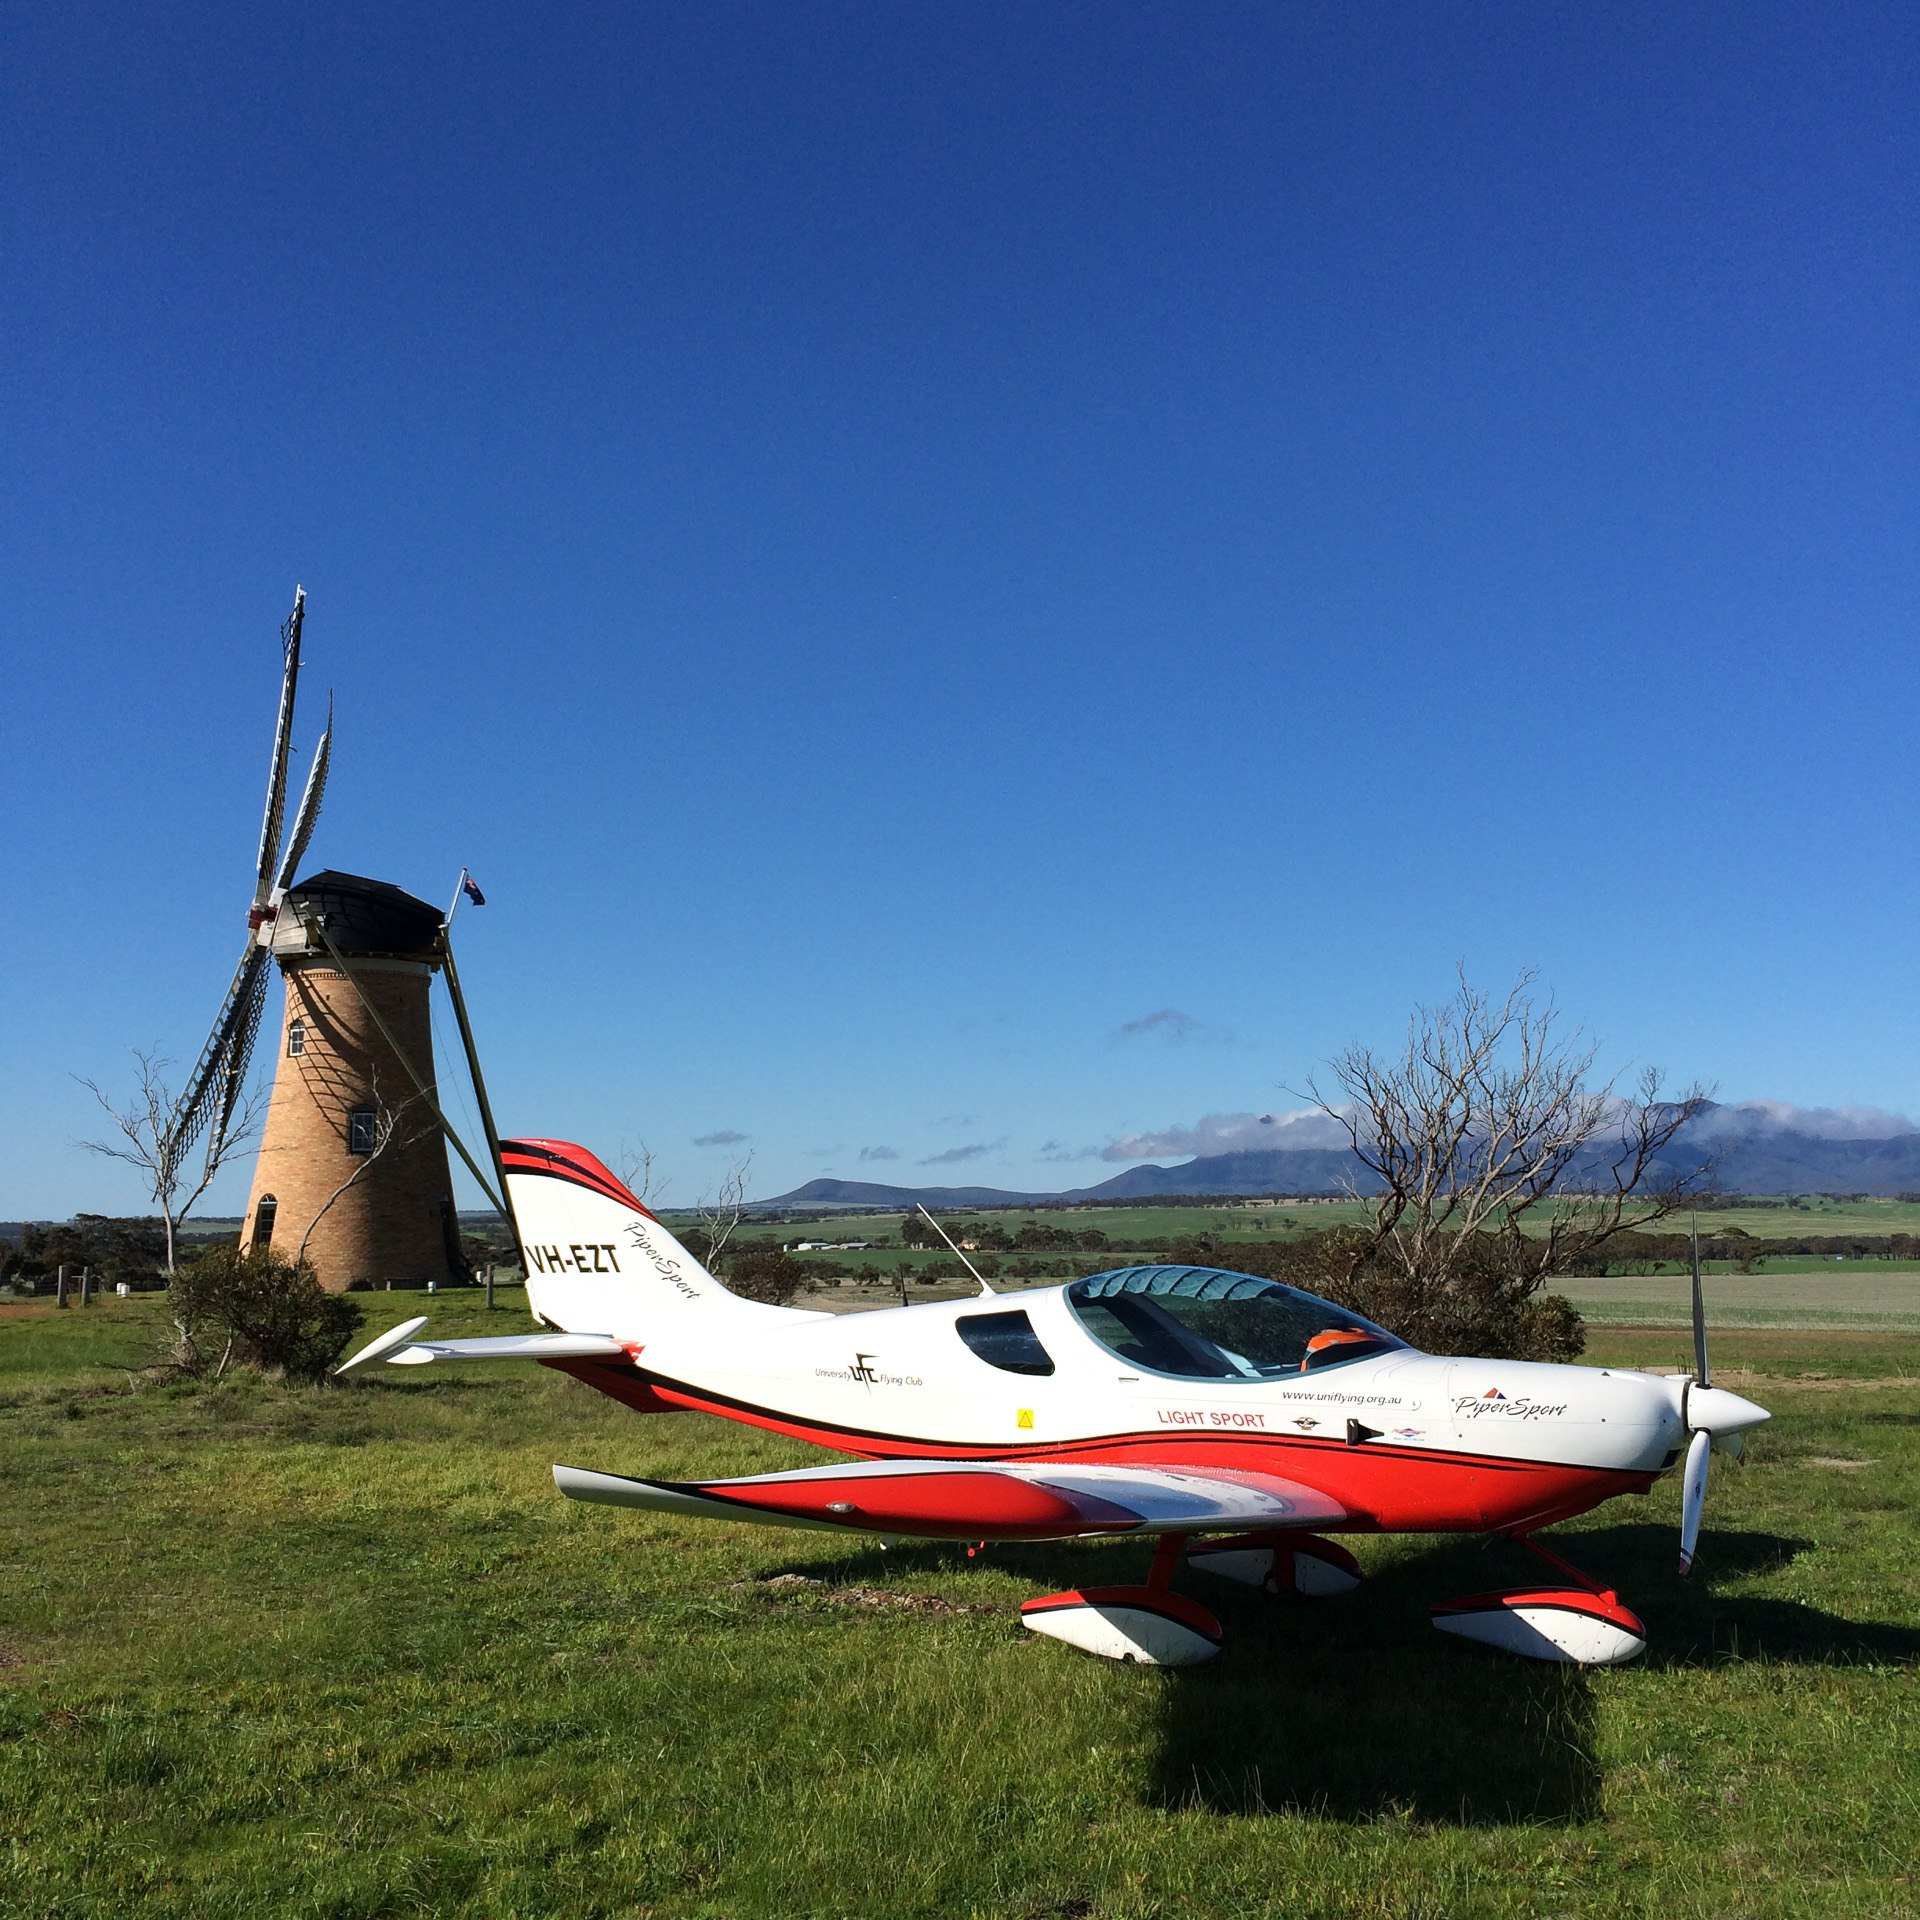 VH-EZT at the lily dutch windmill runway airstrip